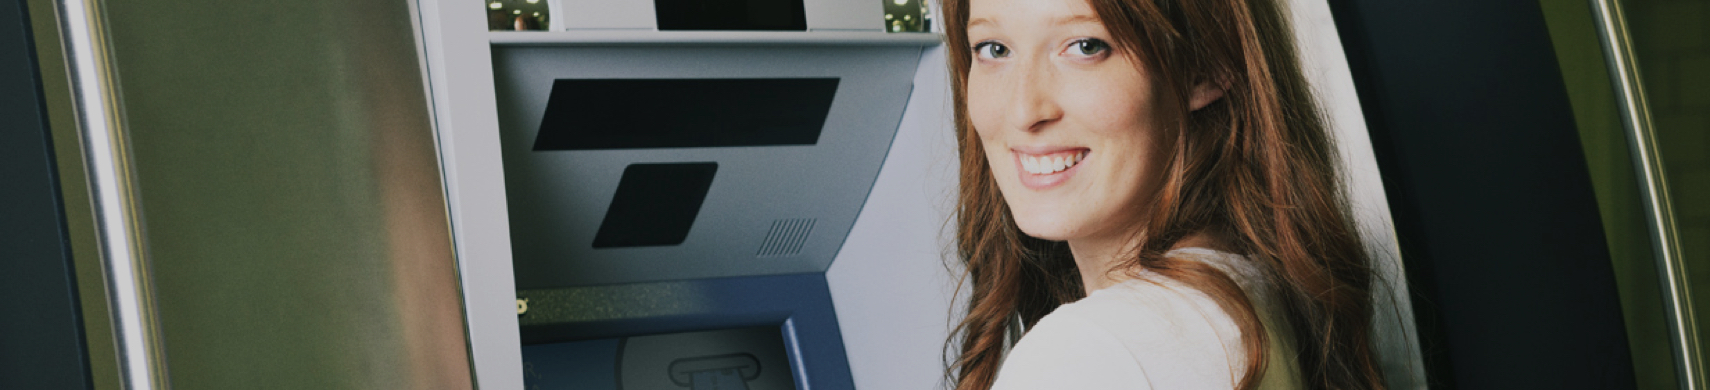 Payments Security Solutions